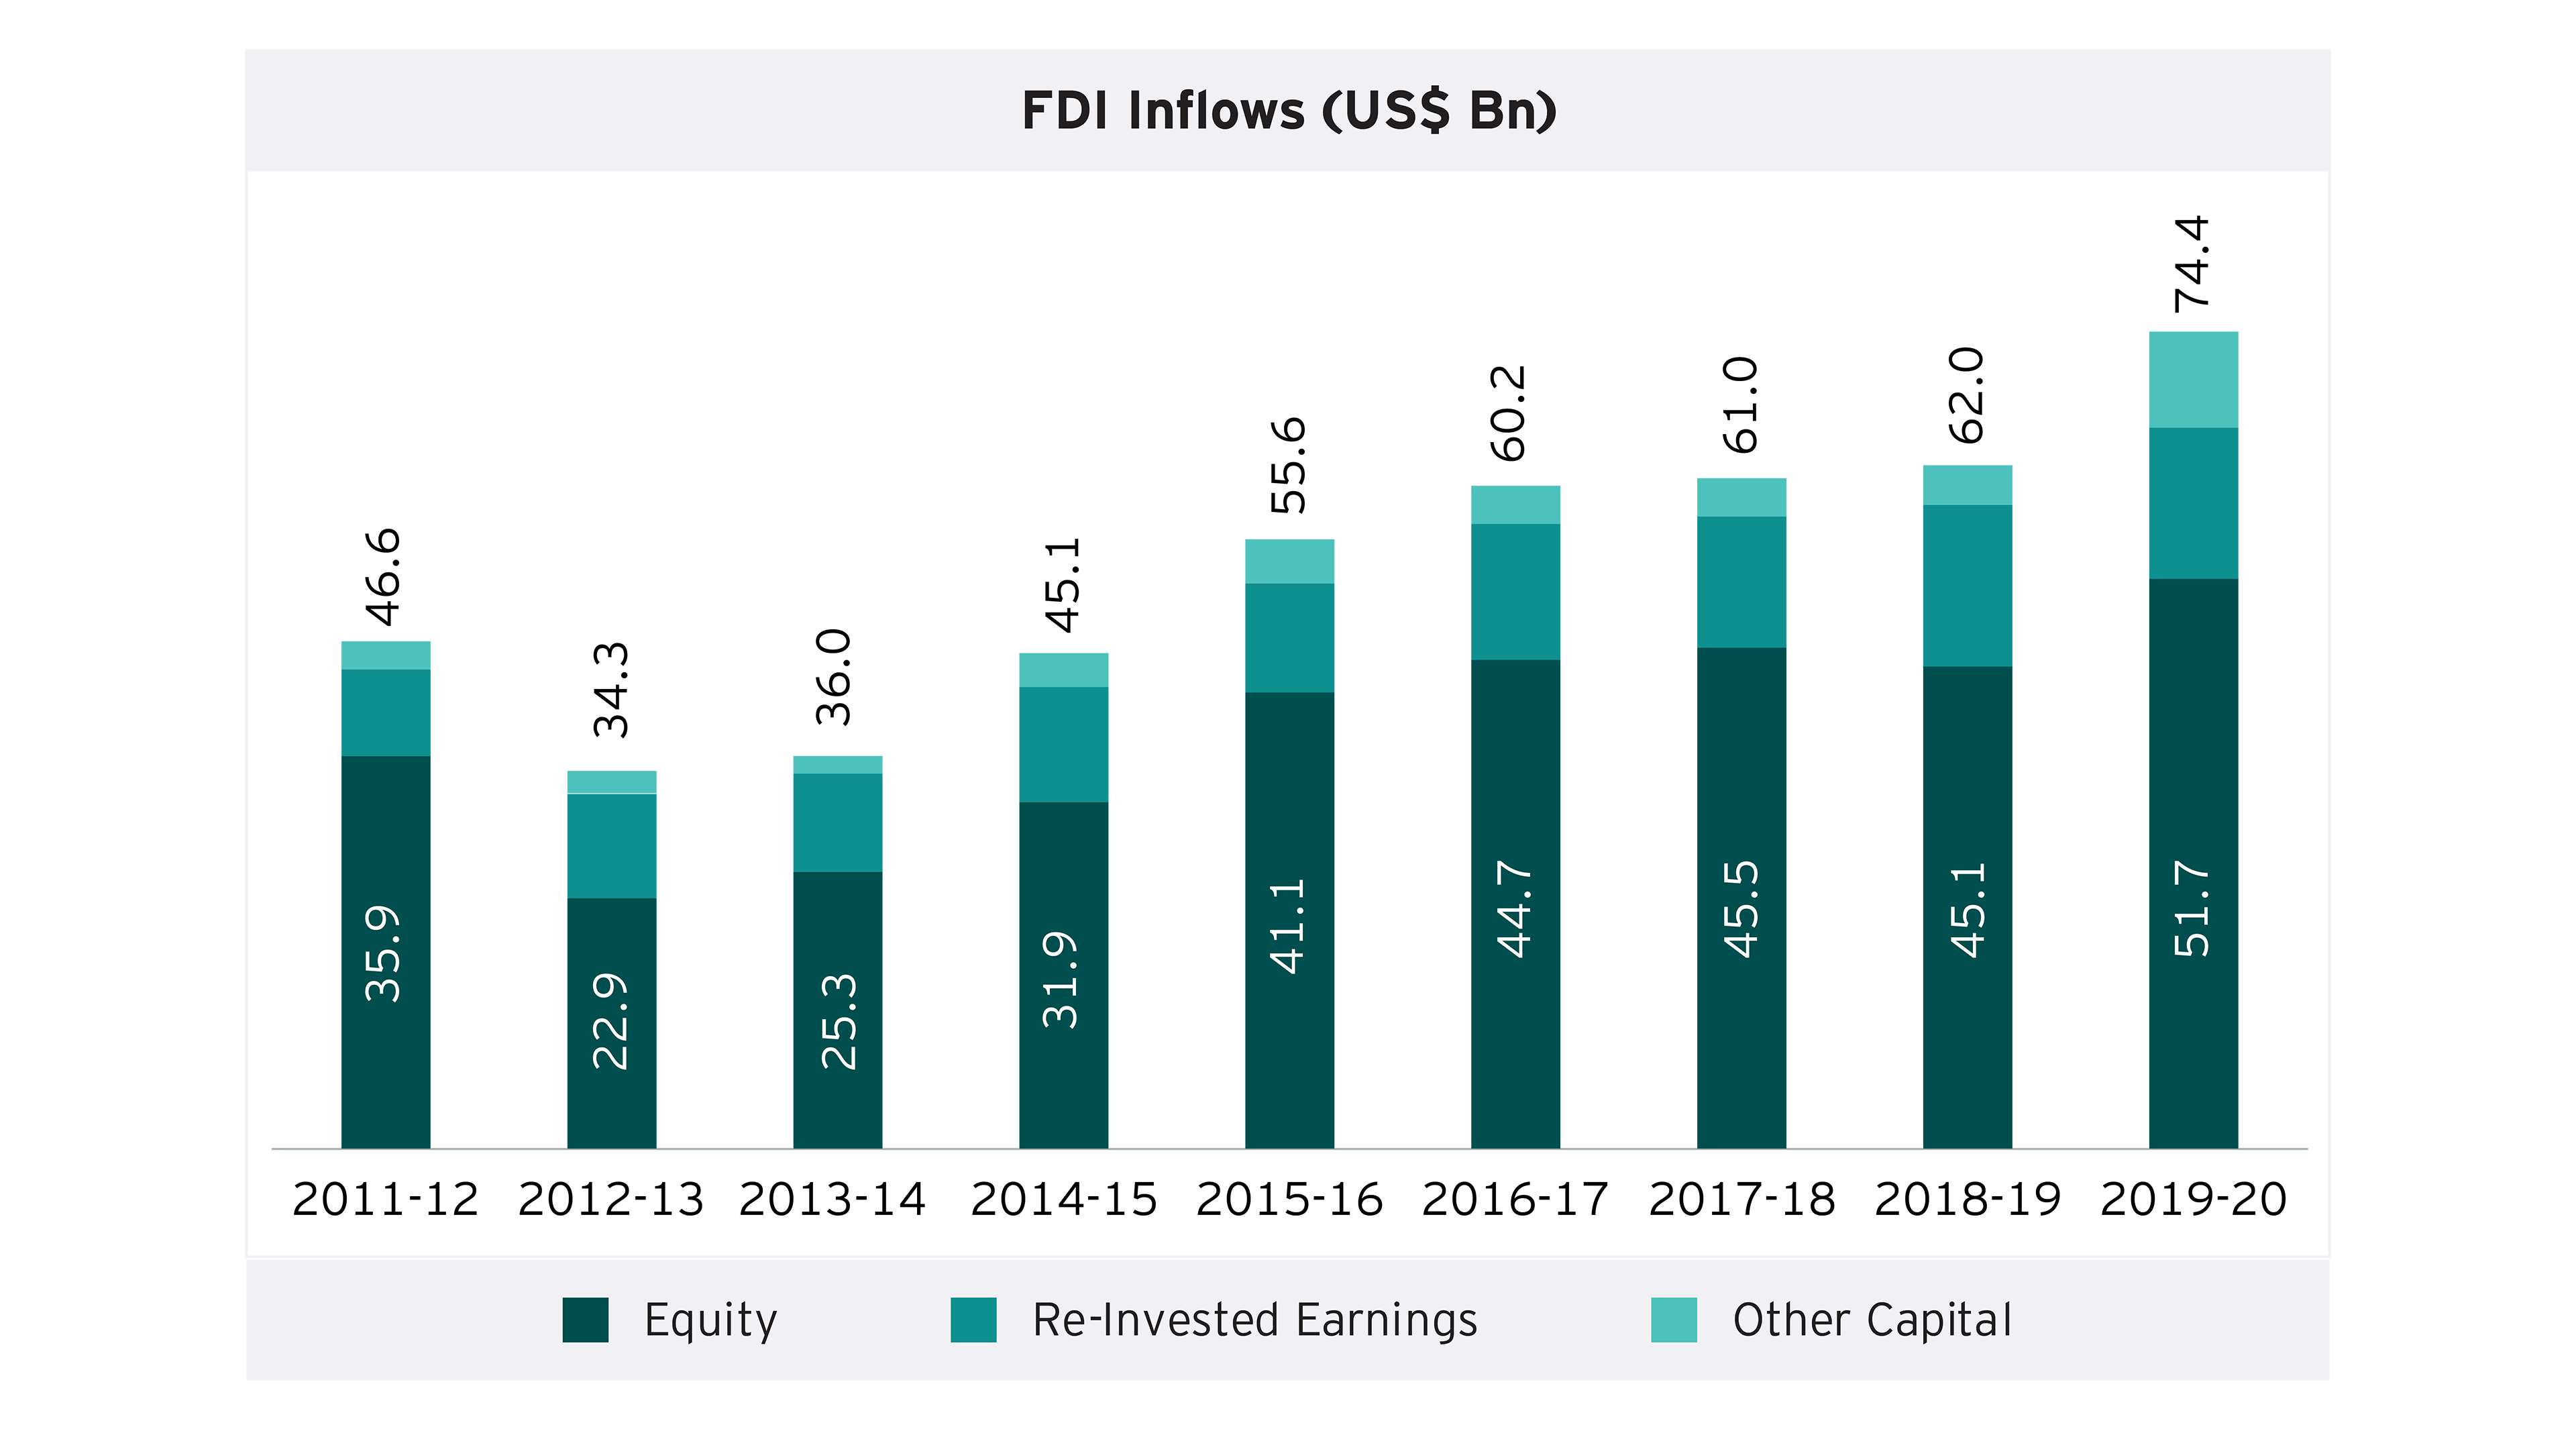 India's reforms focus has resulted in consistent rise in FDI